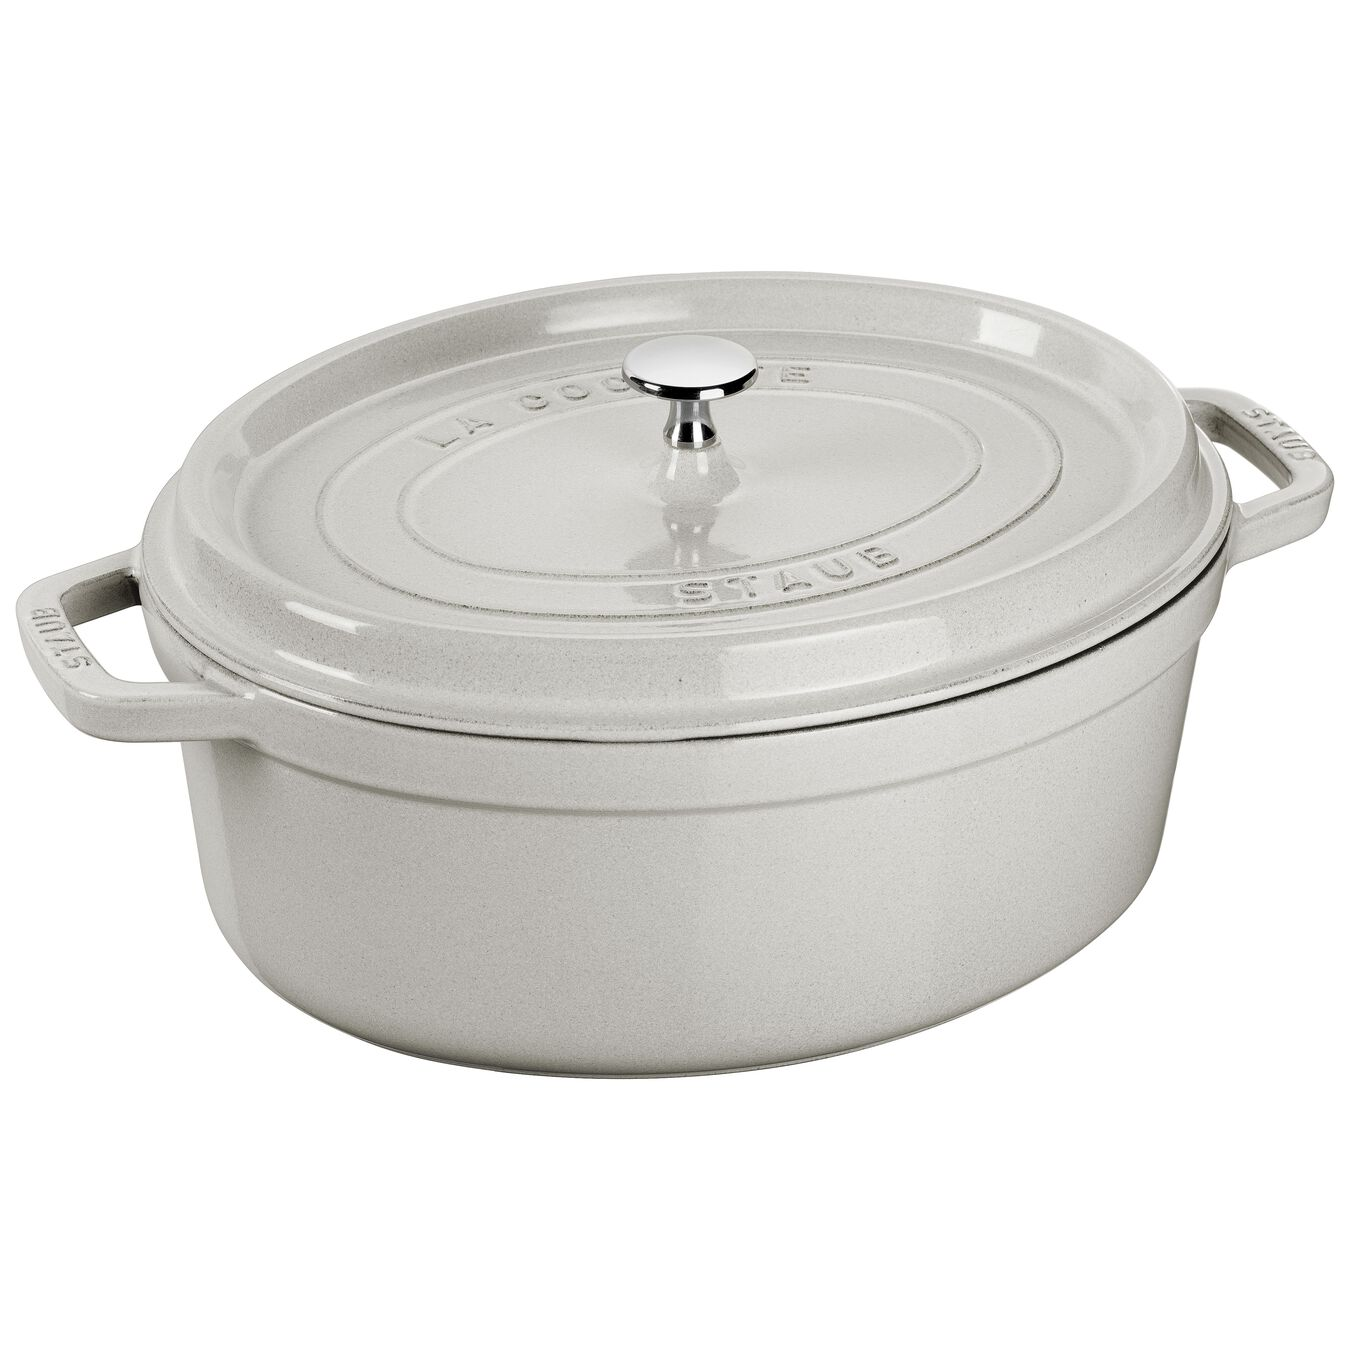 8 l oval Cocotte, white truffle,,large 1